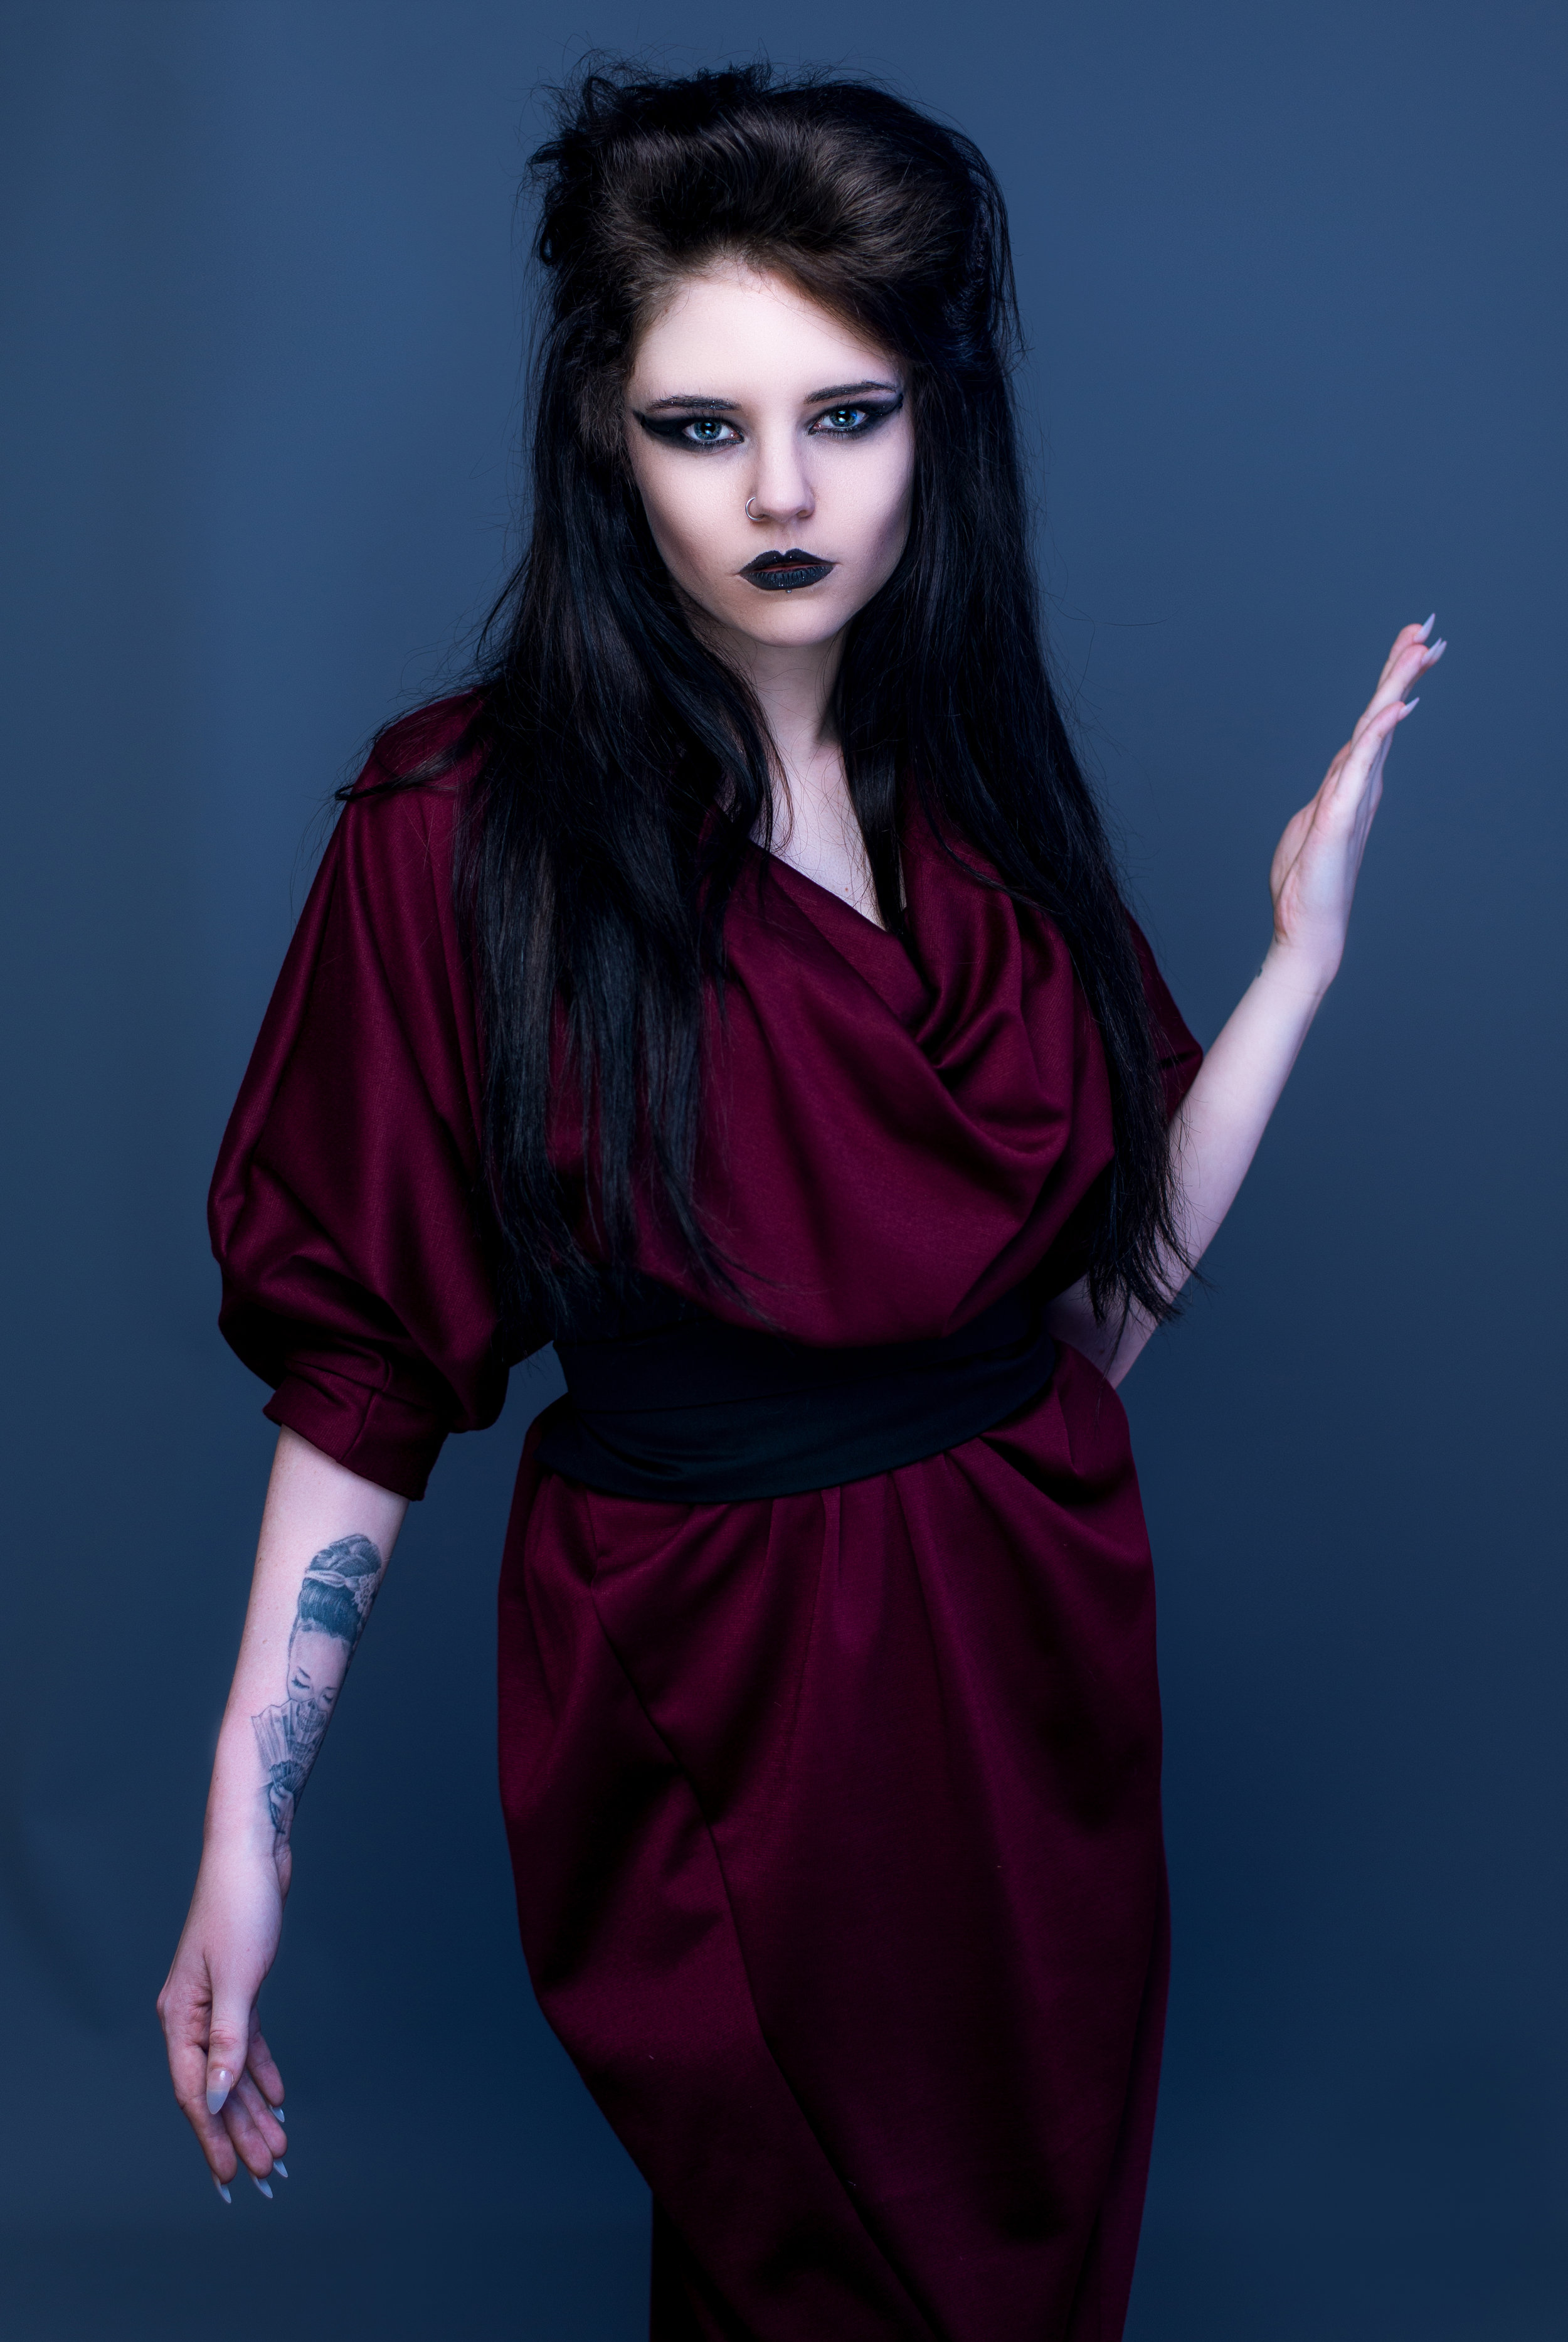 zaramia-ava-zaramiaava-leeds-fashion-designer-ethical-sustainable-tailored-minimalist-aya-burgundy-black-obi-belt-dress-versatile-drape-cowl-styling-studio-womenswear-models-photoshoot-vibrant-16